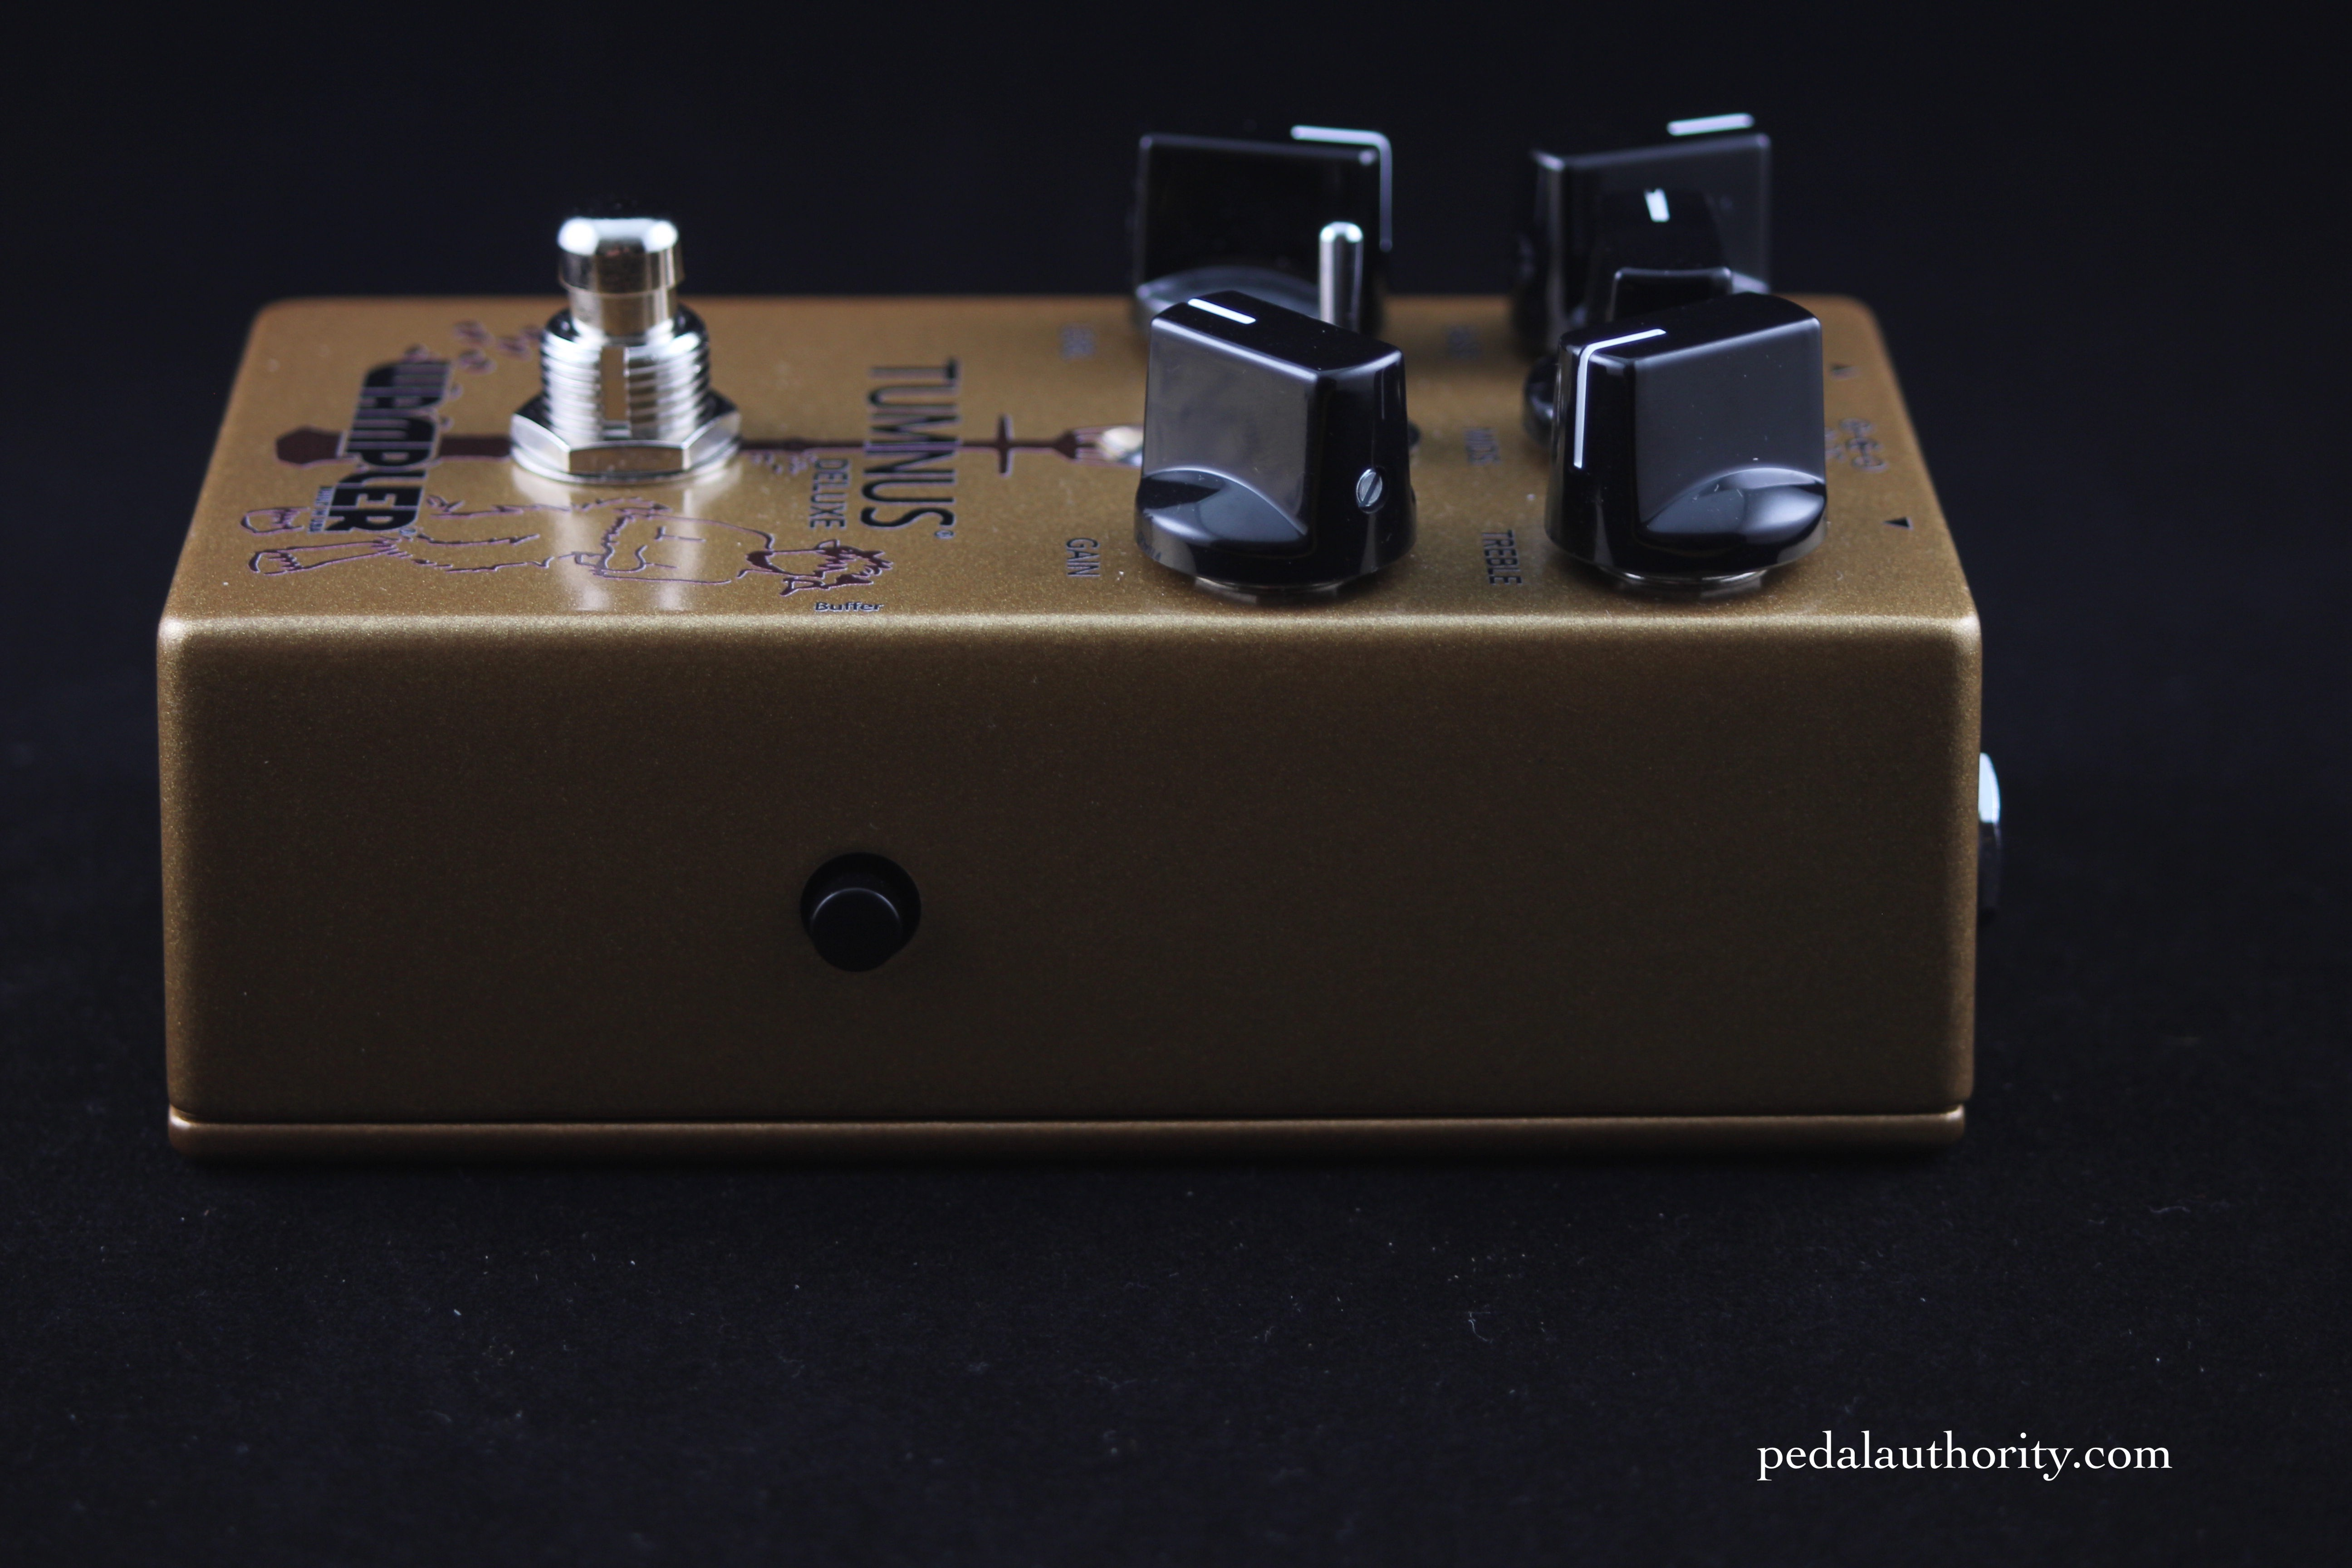 Review Wampler Tumnus Deluxe Pedal Authority Buffer Circuit Was Added Before The Actual Wah It Is There If A Switch On Side Of That Allows You To Easily Between True Bypass And Buffered Modes This Feature Becoming